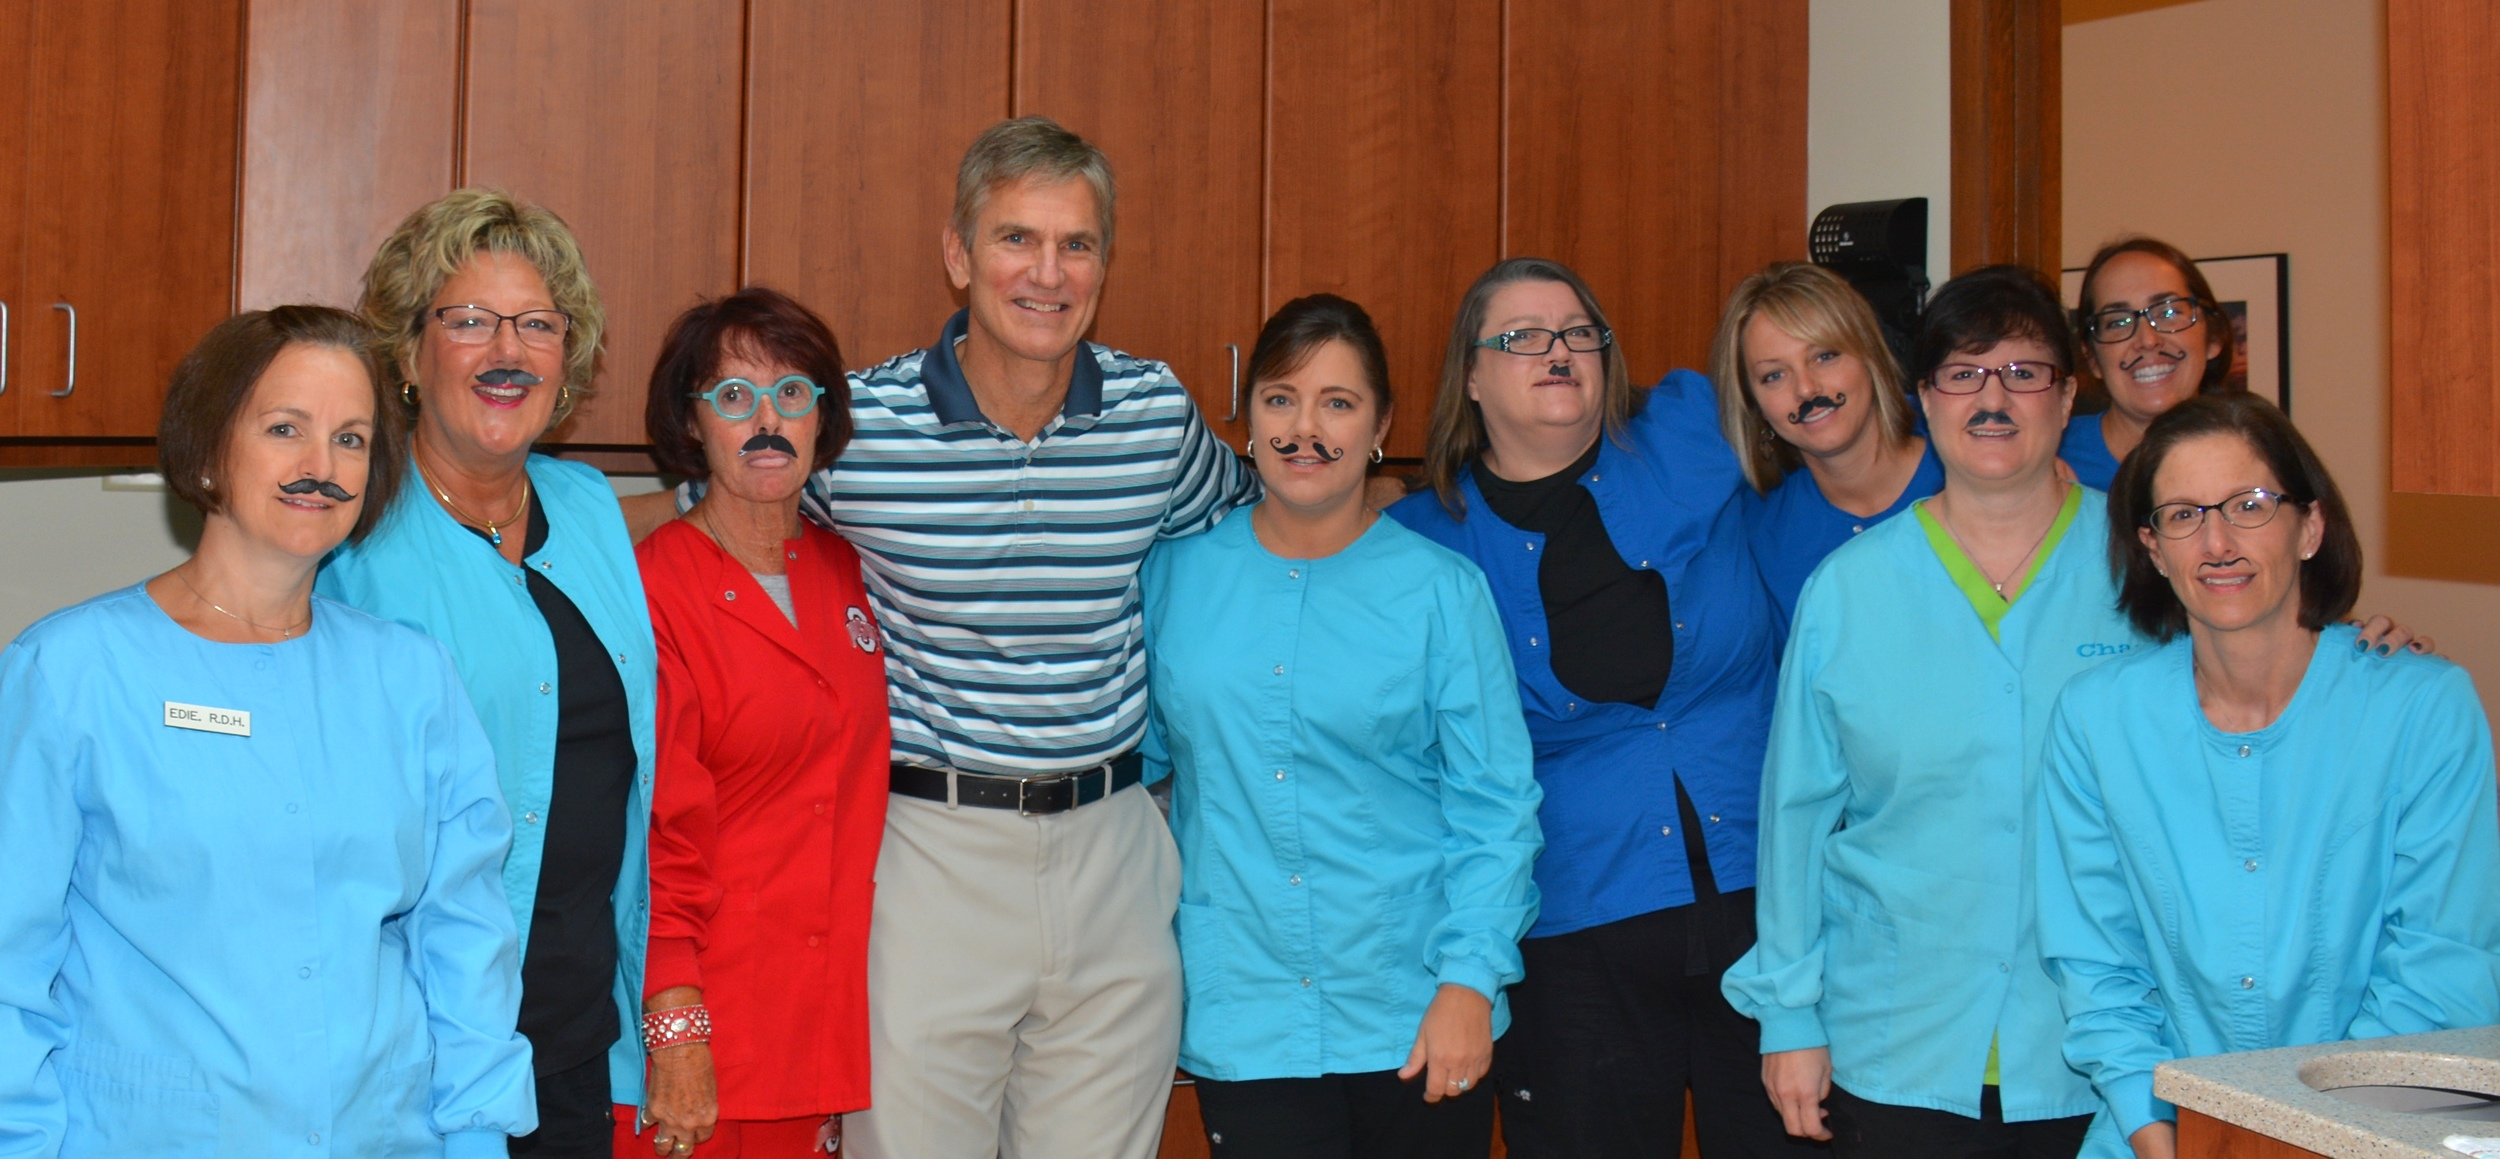 Having a little fun in honor of Dr. Bowen shaving his mustache after having it for many, many years. You all look marvelous!